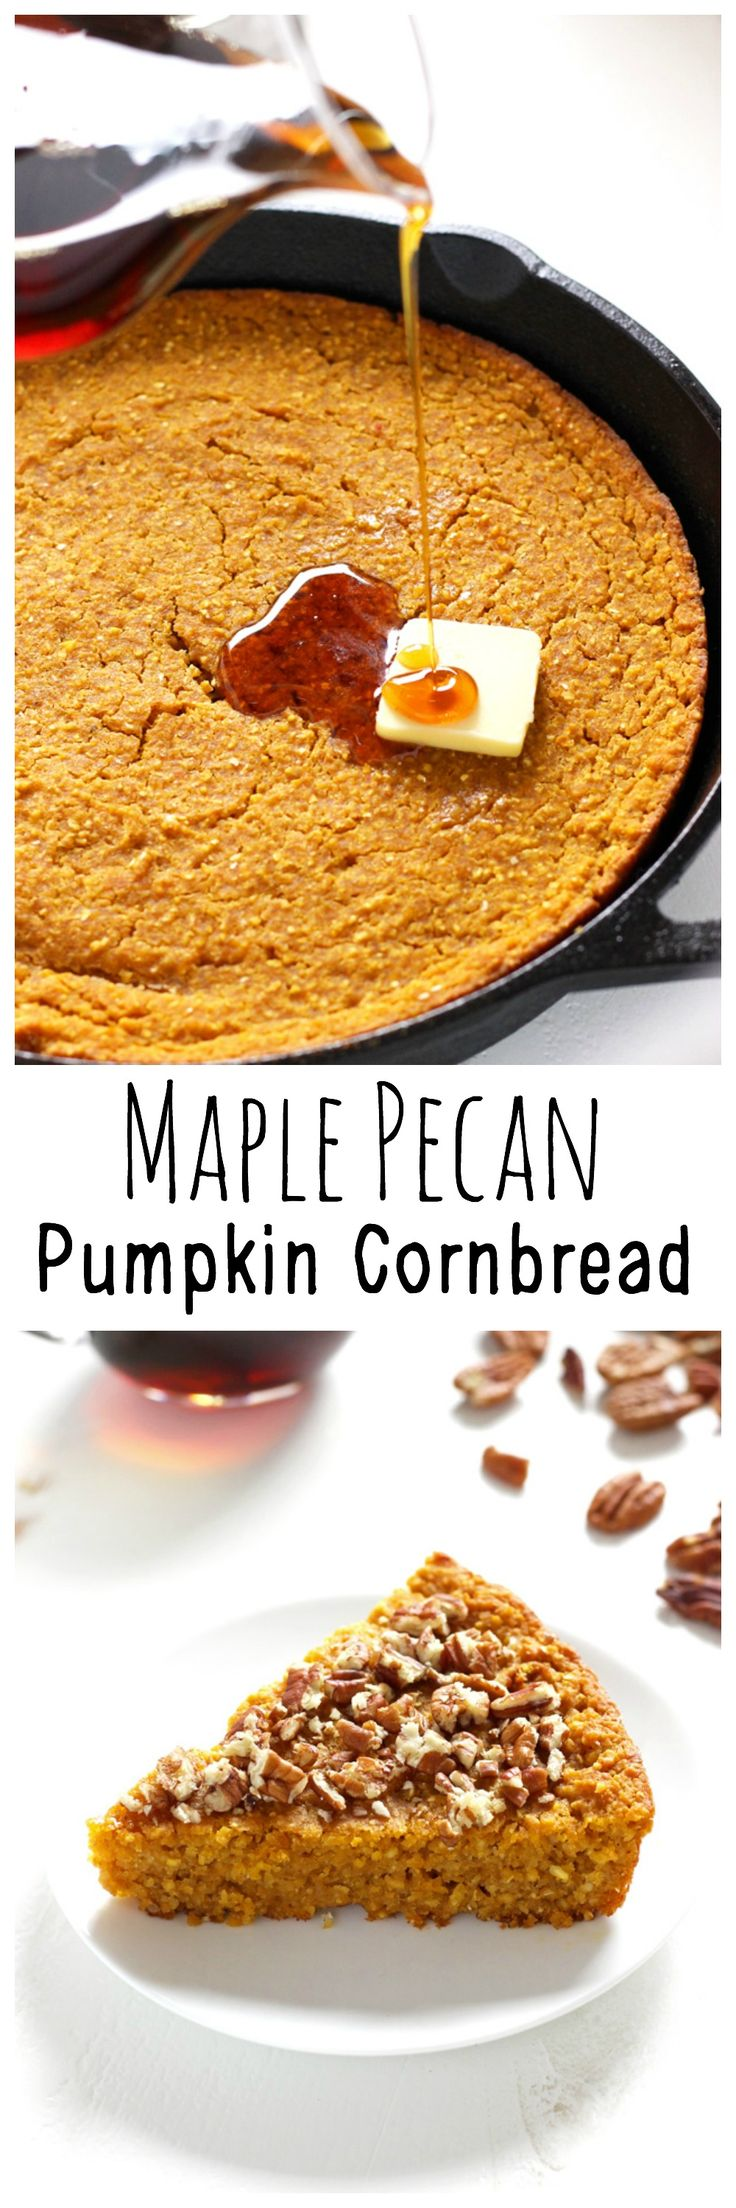 ... Bread - Cornbread on Pinterest | Pumpkins, Pecans and Corn muffins